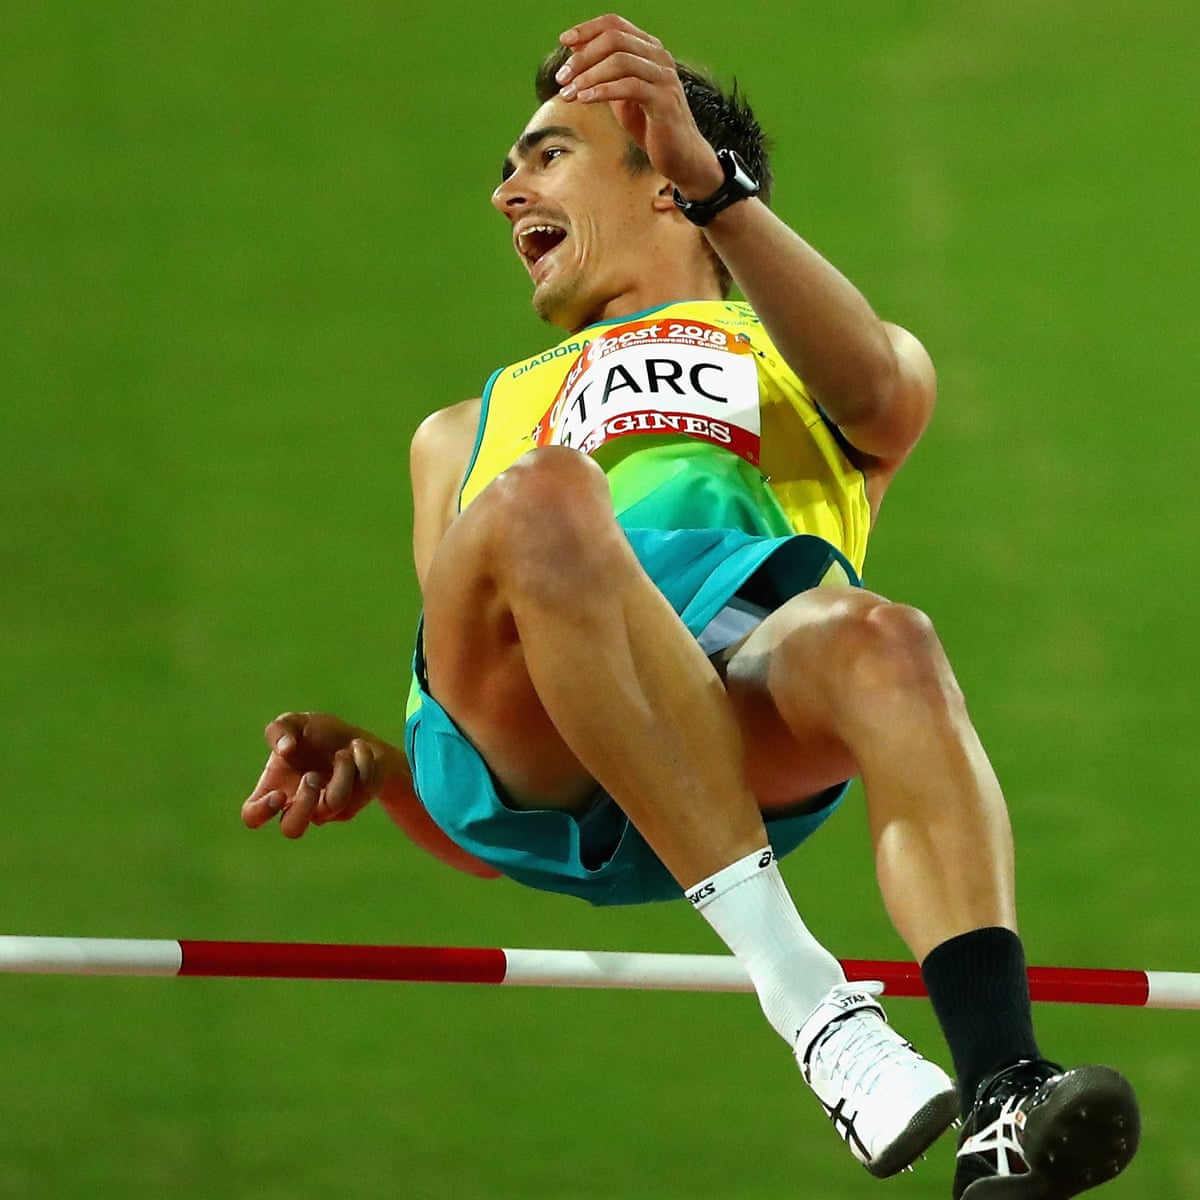 Unexpected High Jump And Javelin Successes Boost Golden Day For Australia Sport The Guardian